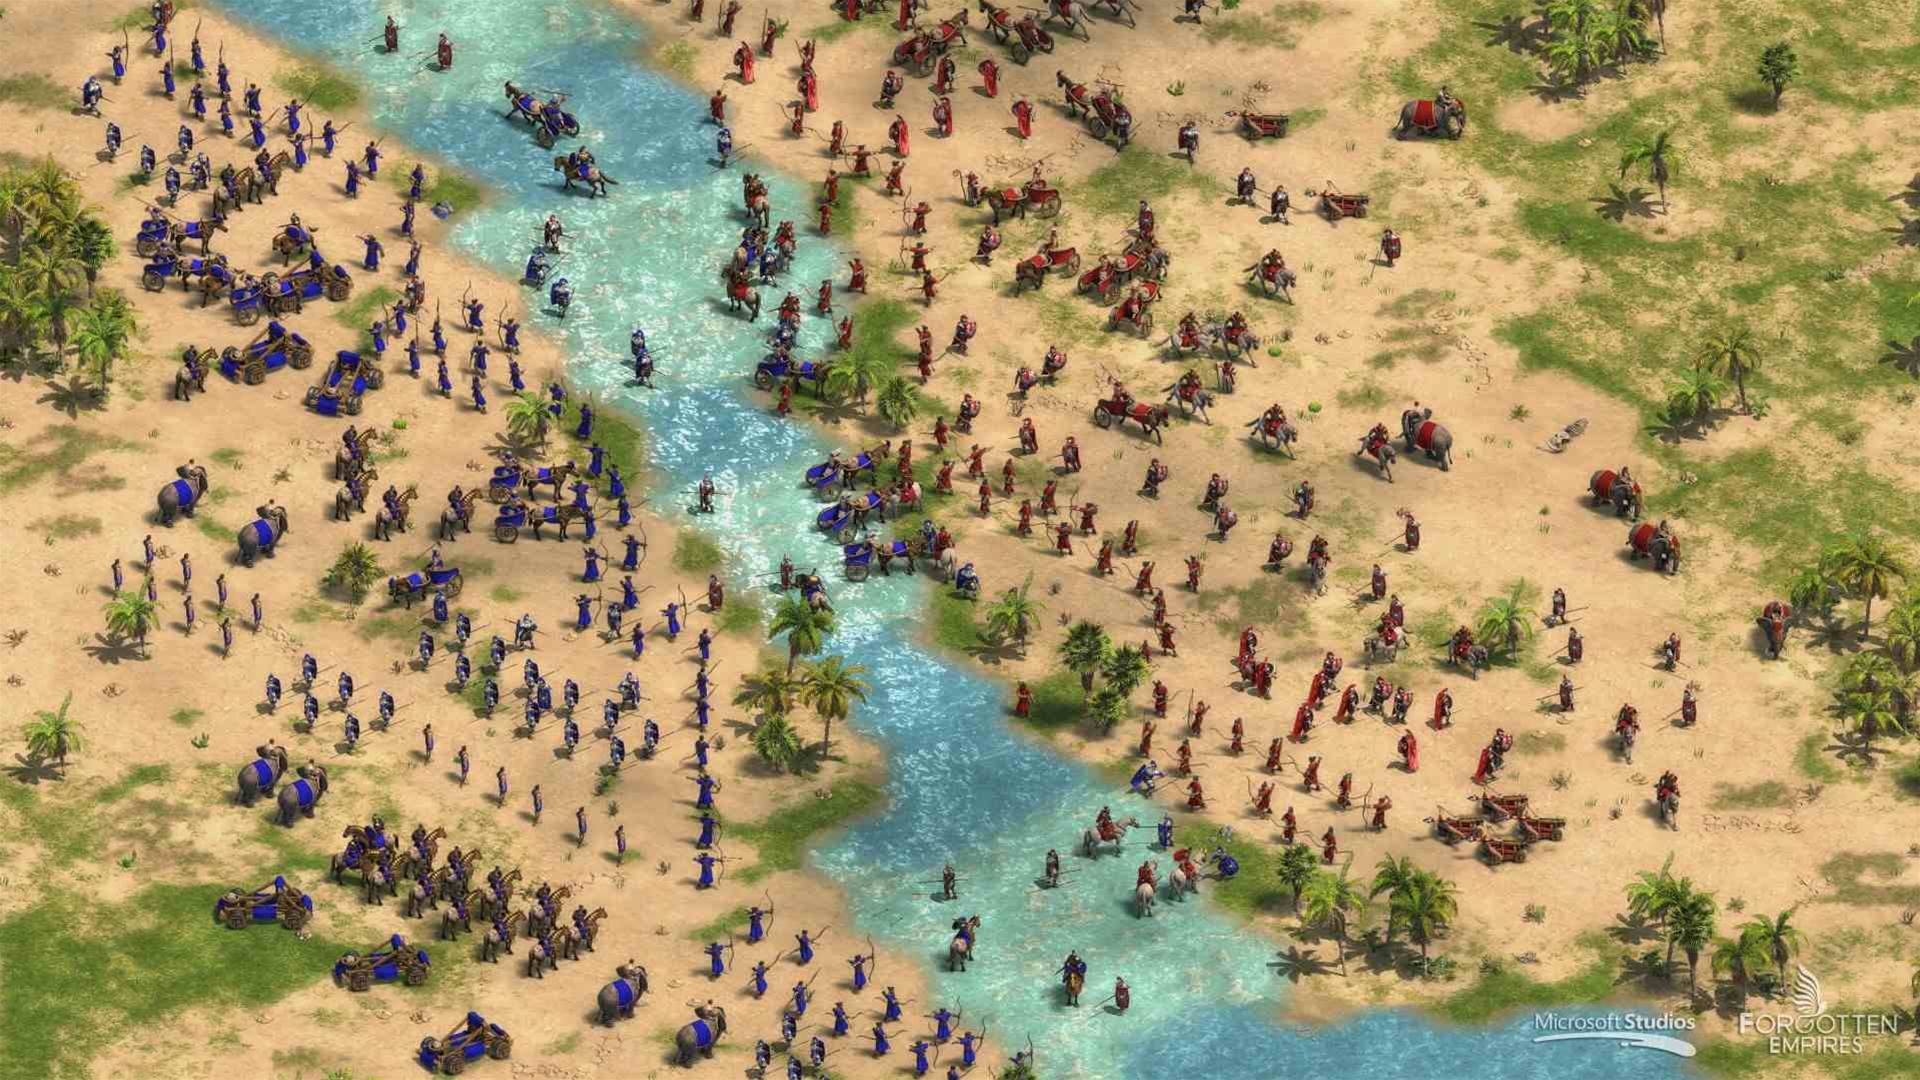 Invading screenshots for Age of Empires: Definitive Edition